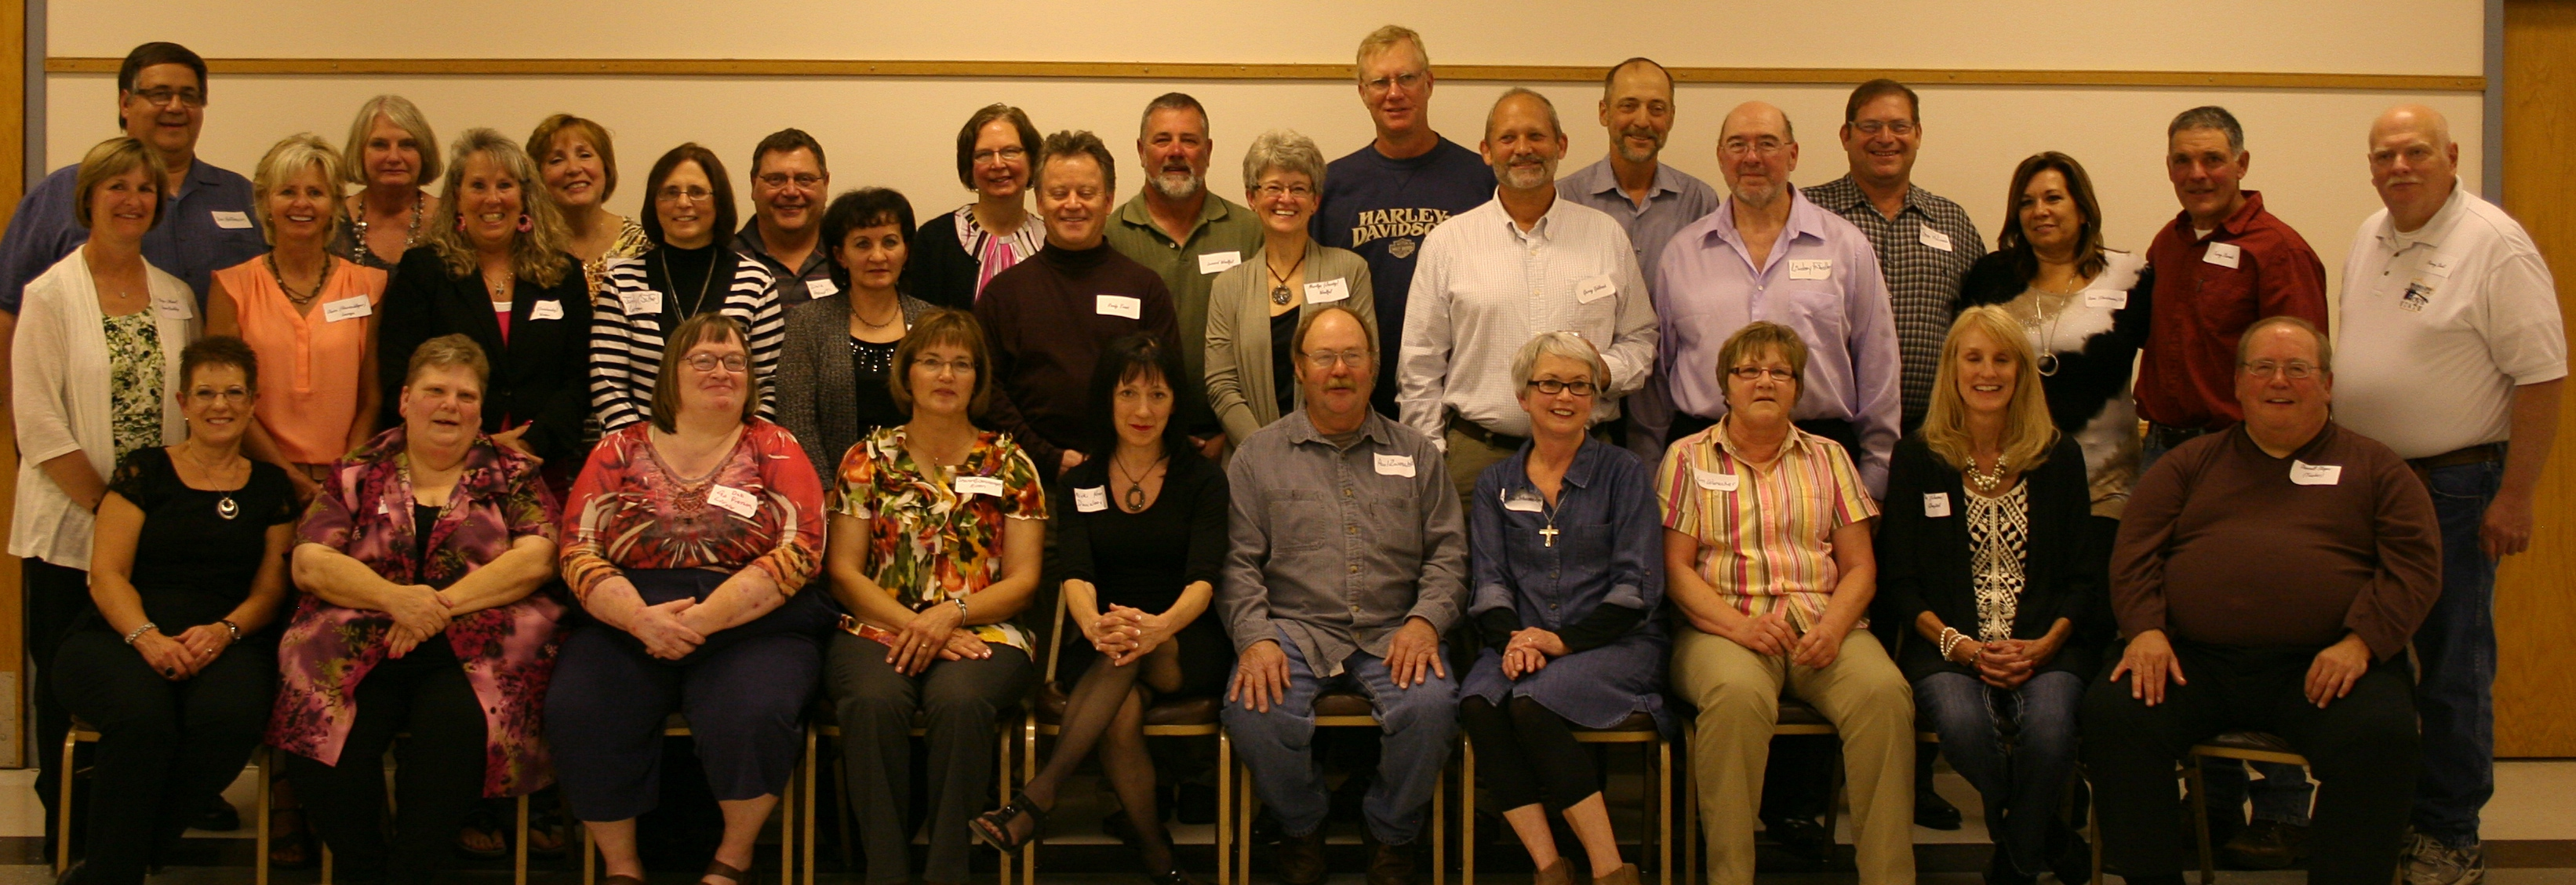 a class reunion Class reunion planning tool kit helpful hints from the council bluffs schools alumni association 1 getting started ideally, start two years in advance of the actual dates of your reunion.